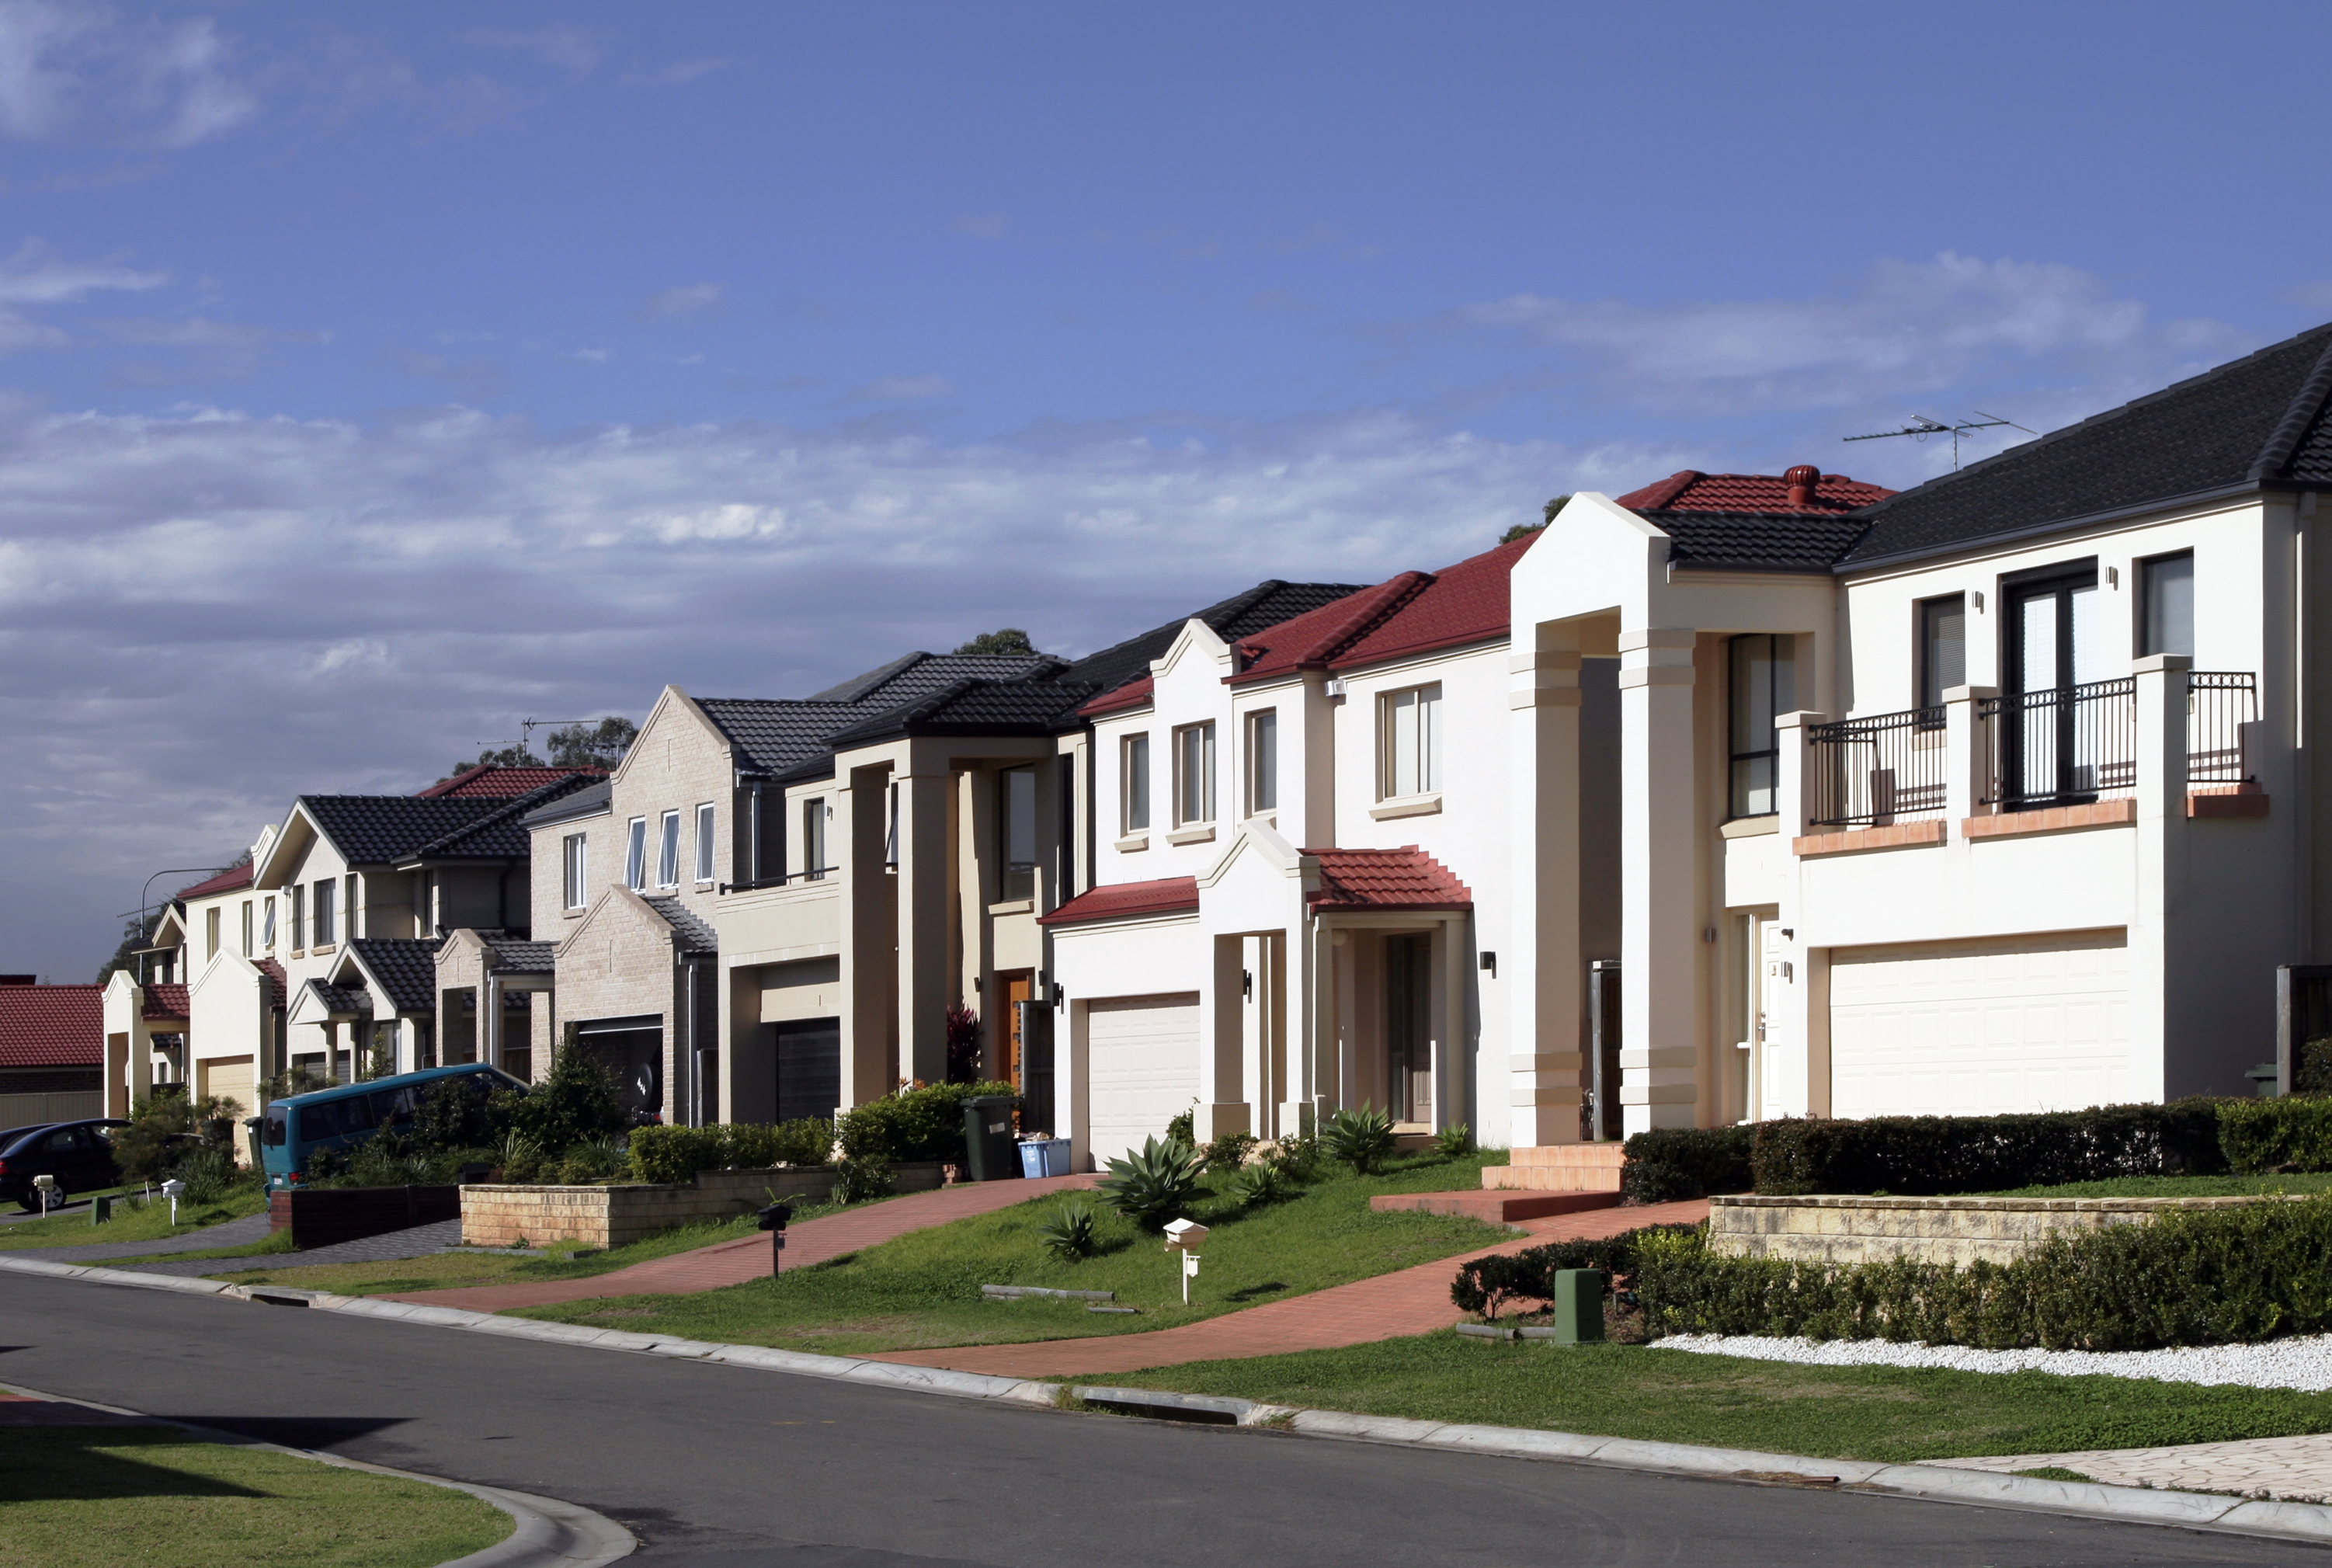 Suburban Street With New Modern Houses In A Sydney Suburb On A Sunny Summer Day, Australia